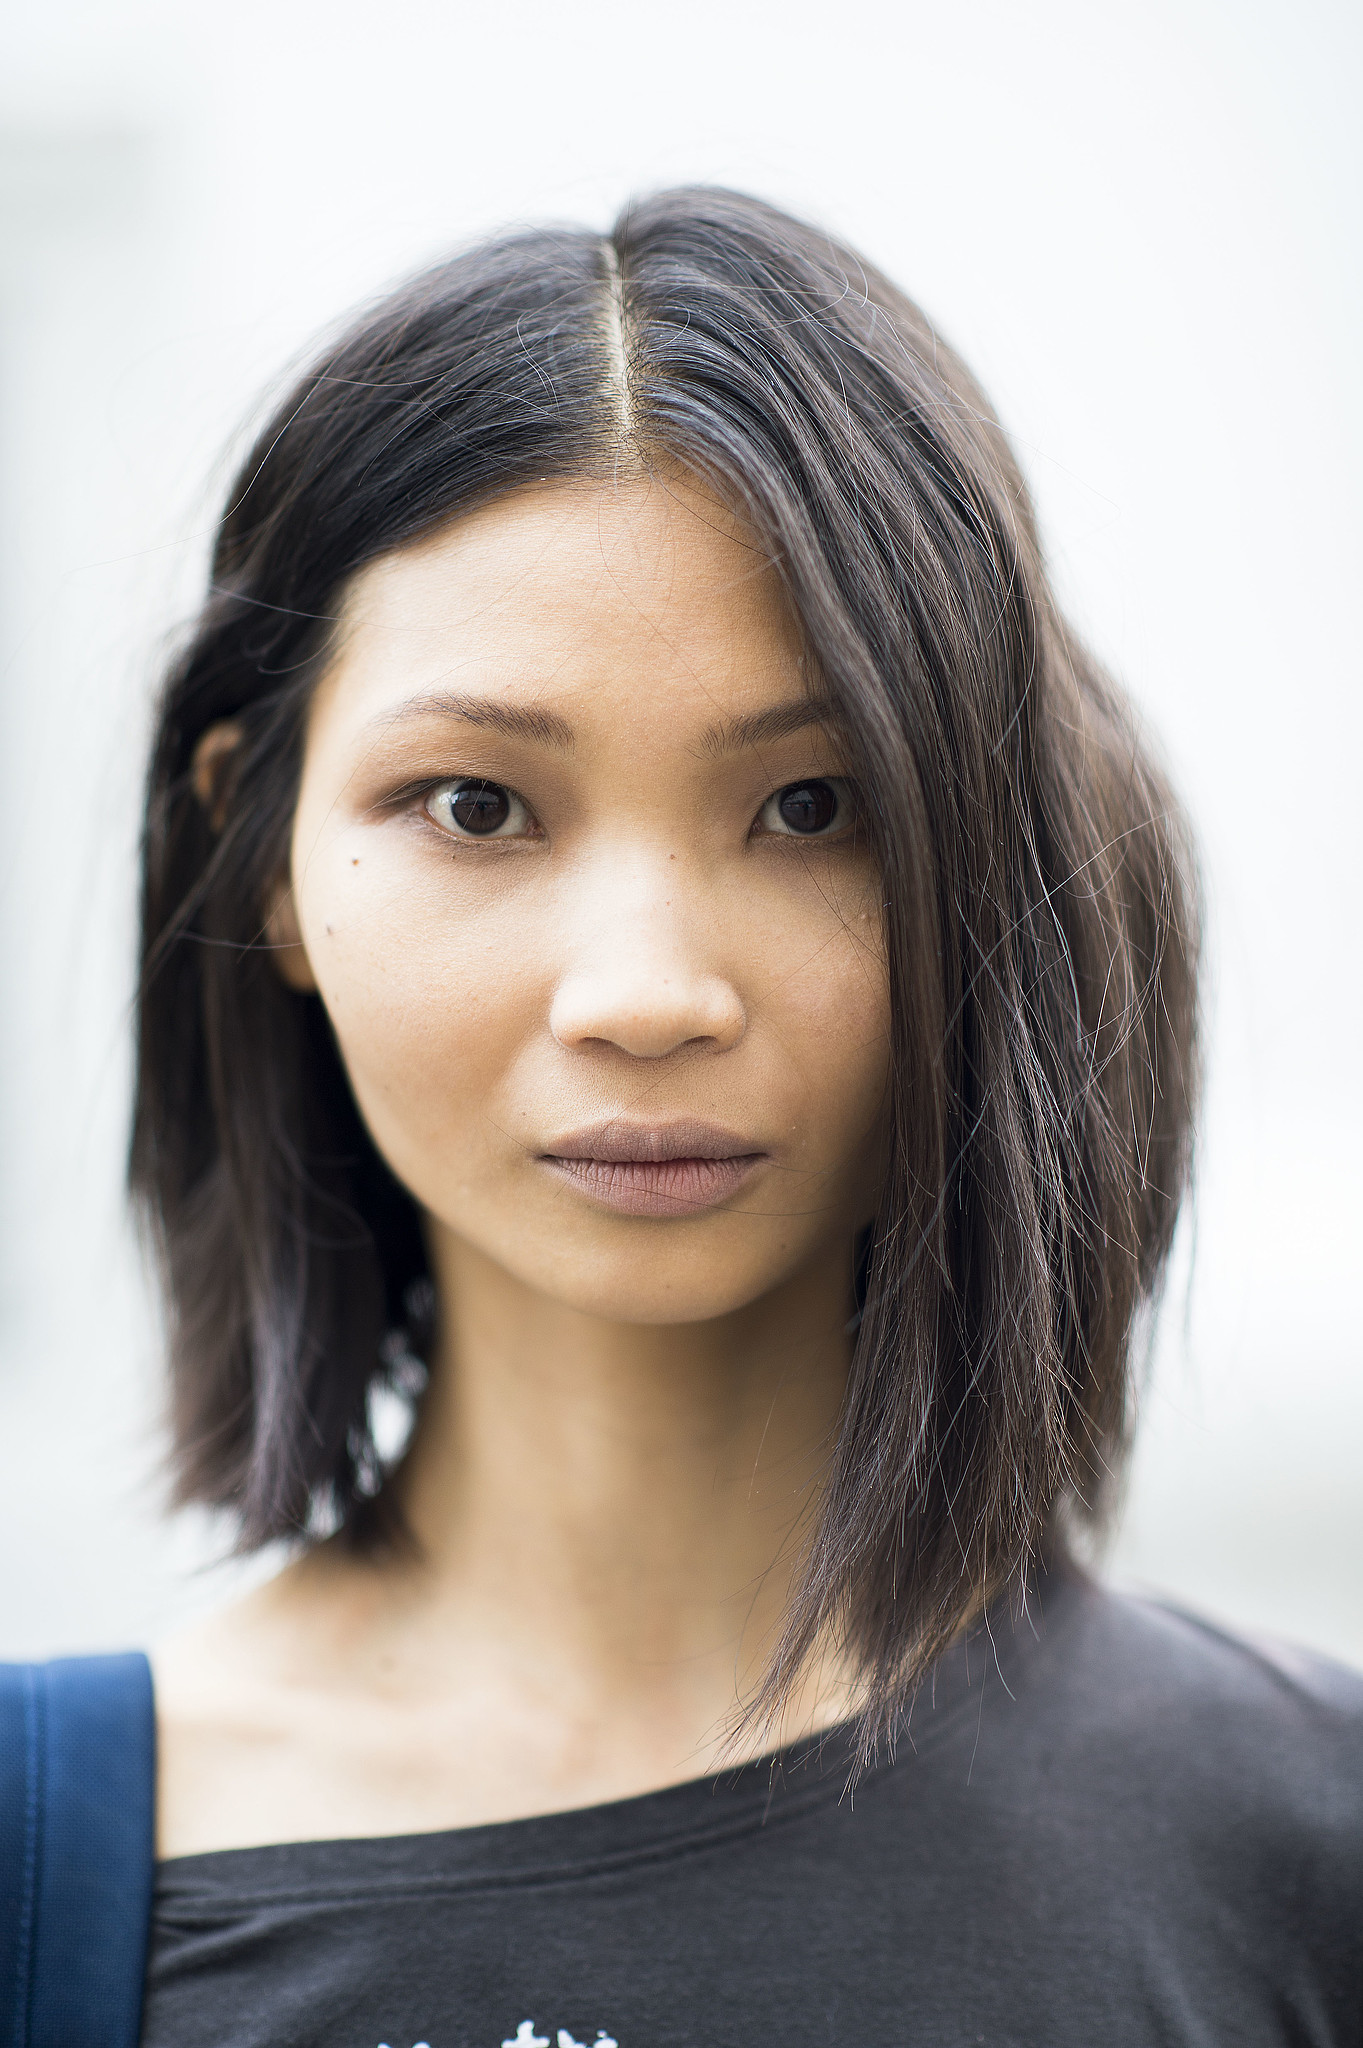 This girl's asymmetrical lob is on trend for Fall. Source: Le 21ème | Adam Katz Sinding